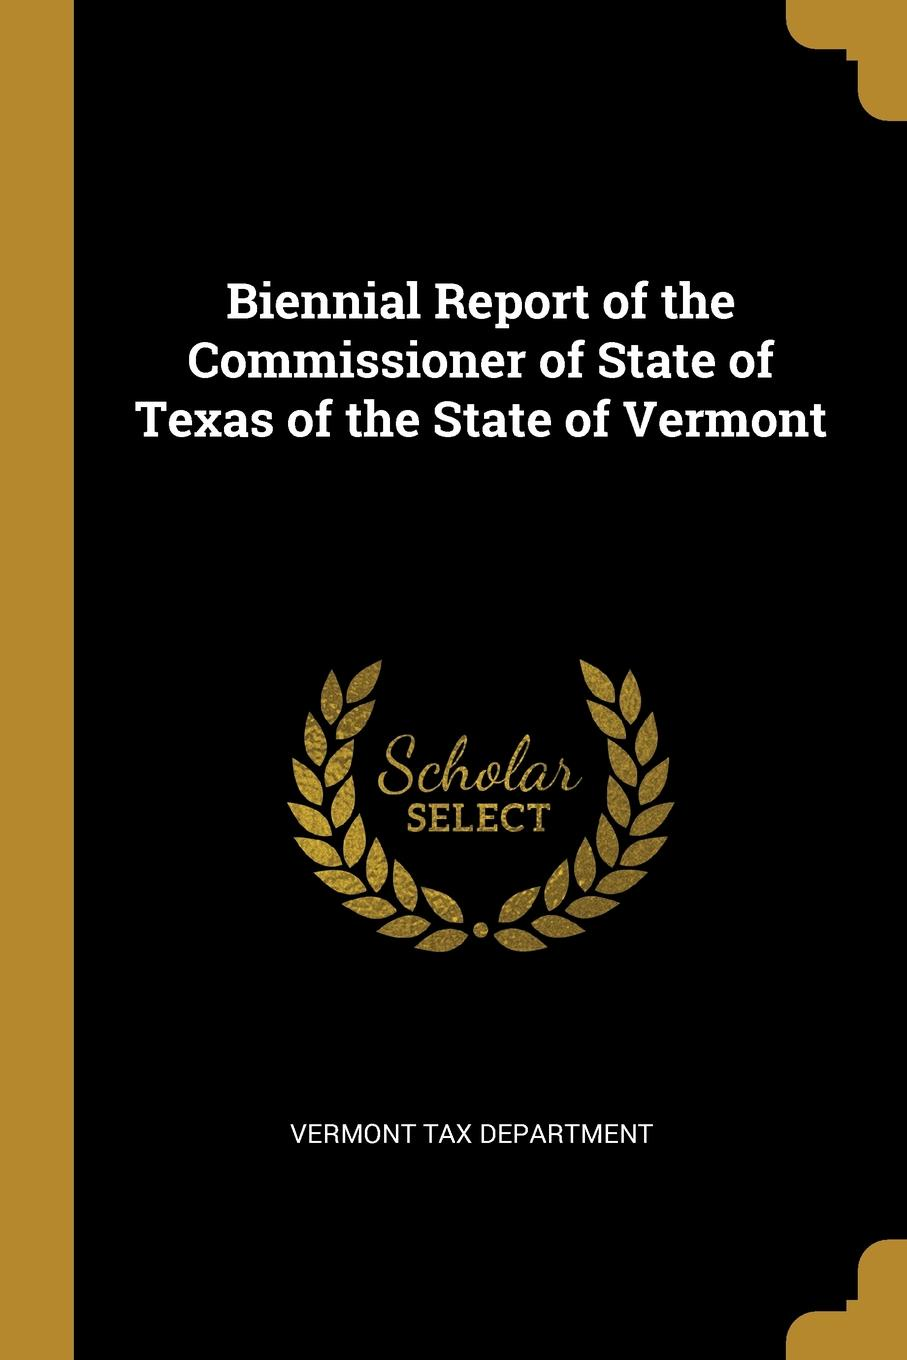 Vermont Tax Department Biennial Report of the Commissioner of State of Texas of the State of Vermont